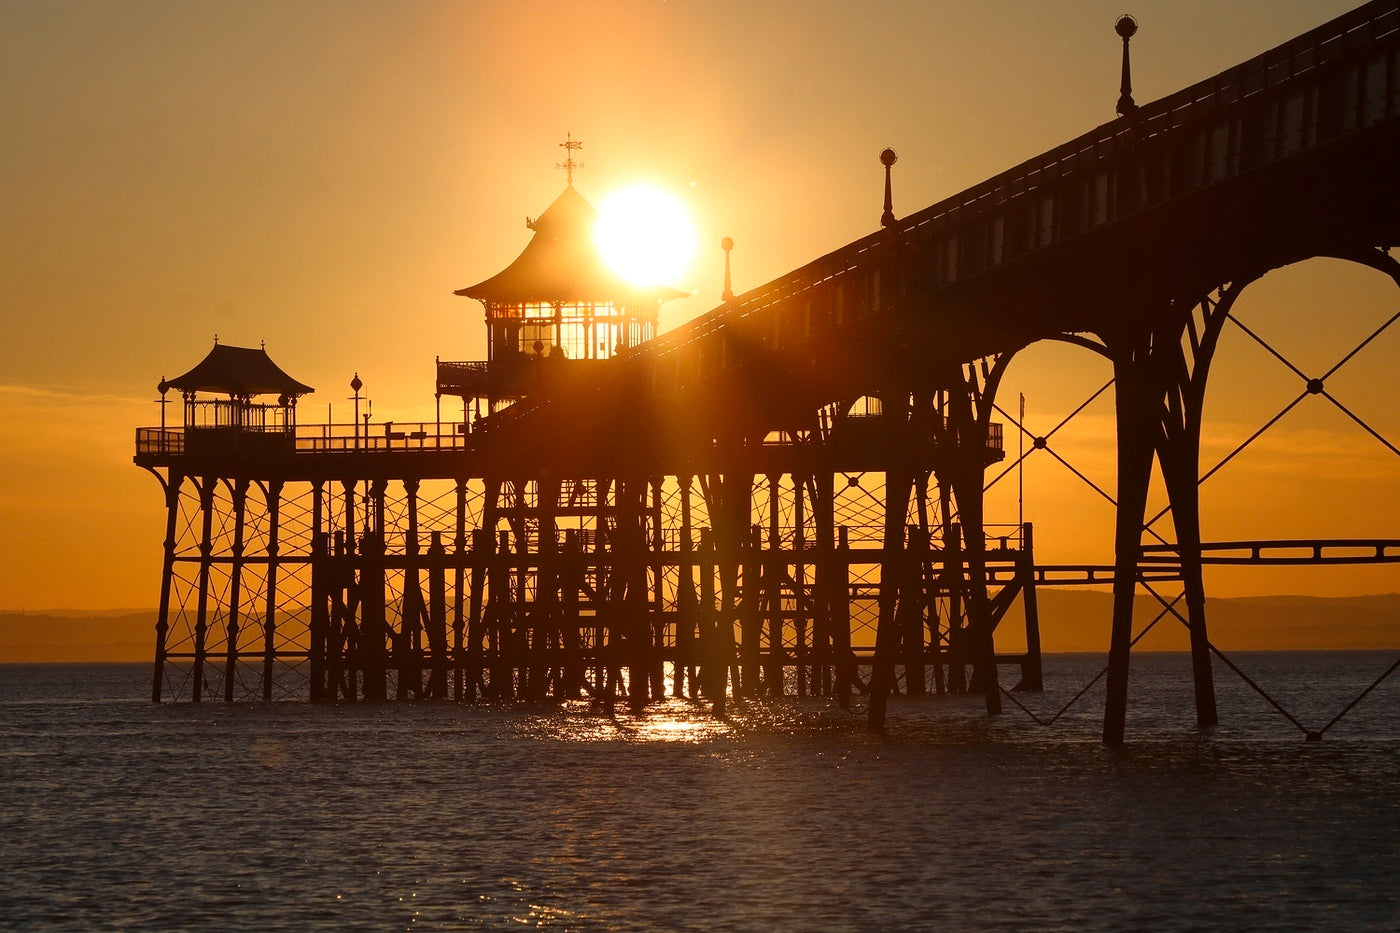 Clevedon Pier with a blazing sun setting behind it into the Bristol channel.